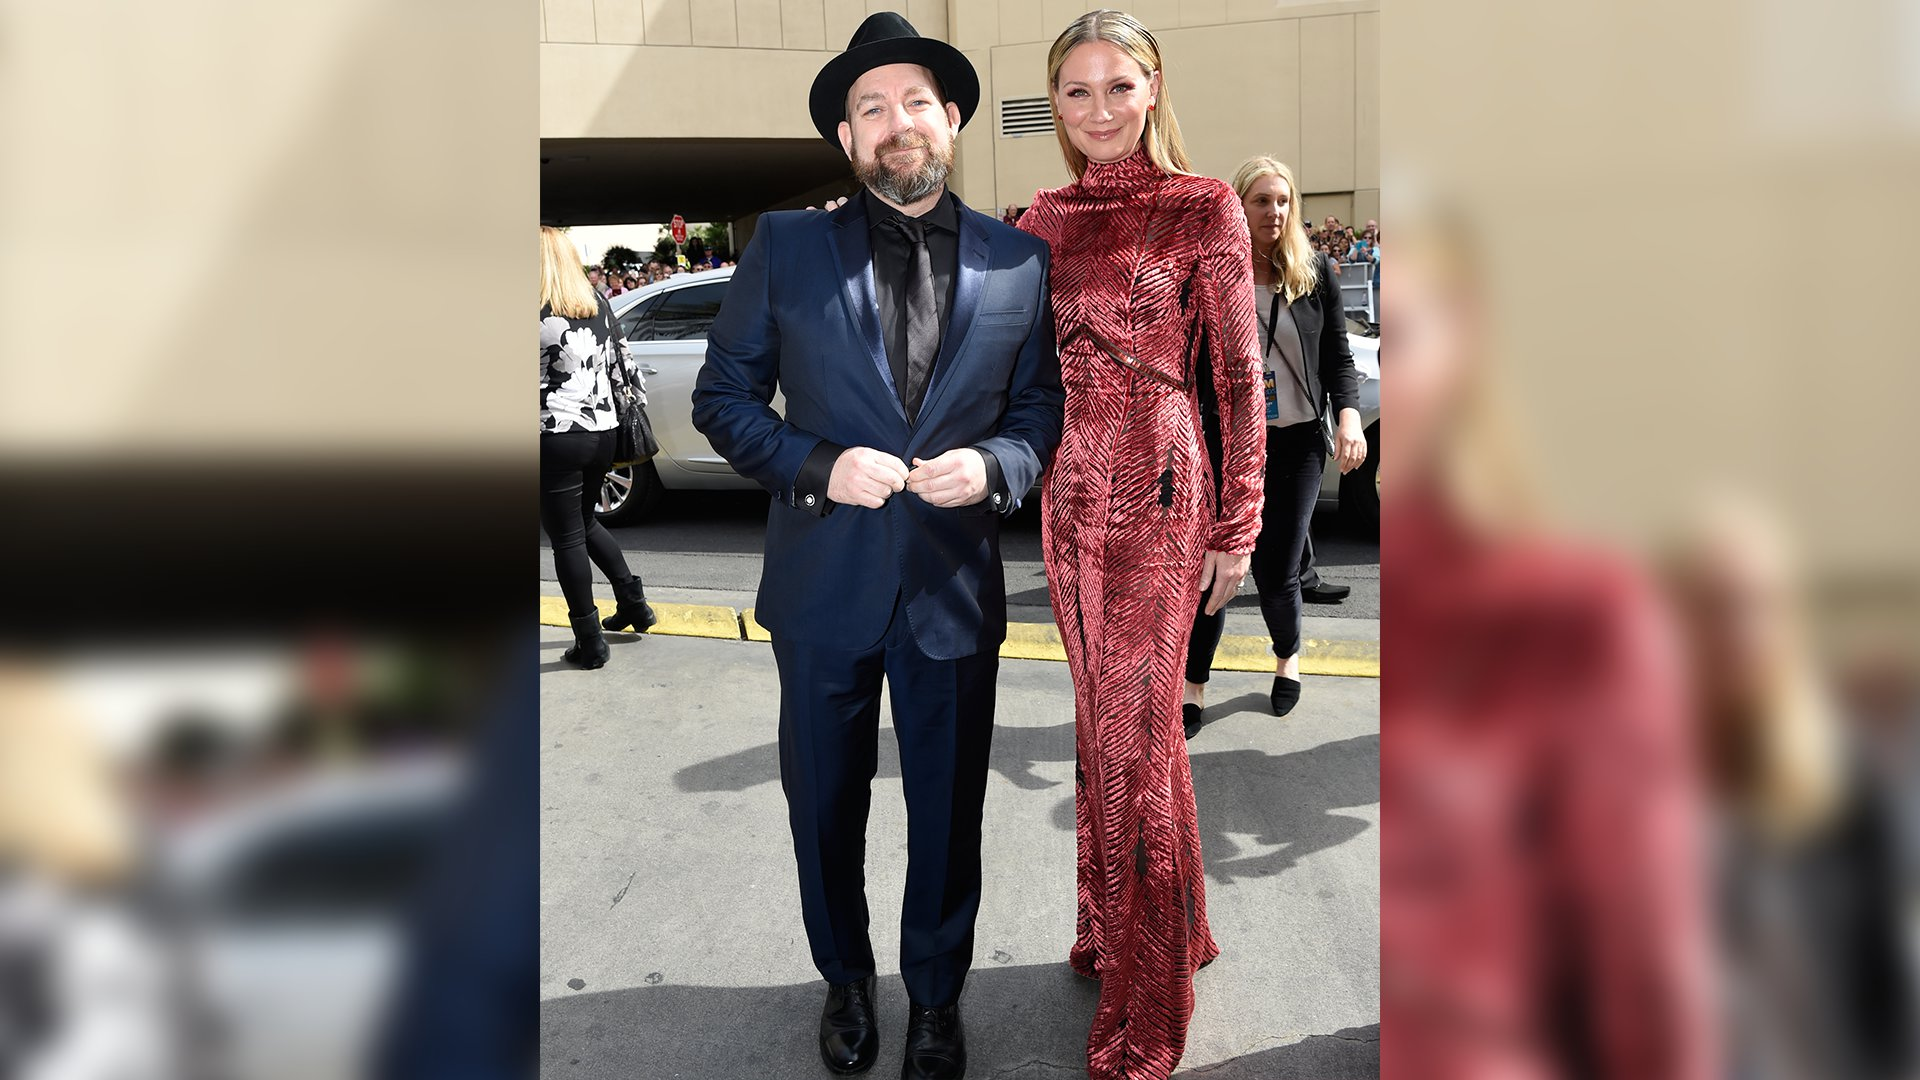 Sugarland singer Jennifer Nettles, standing with bandmate Kristian Bush, looks positively regal in this red column dress.